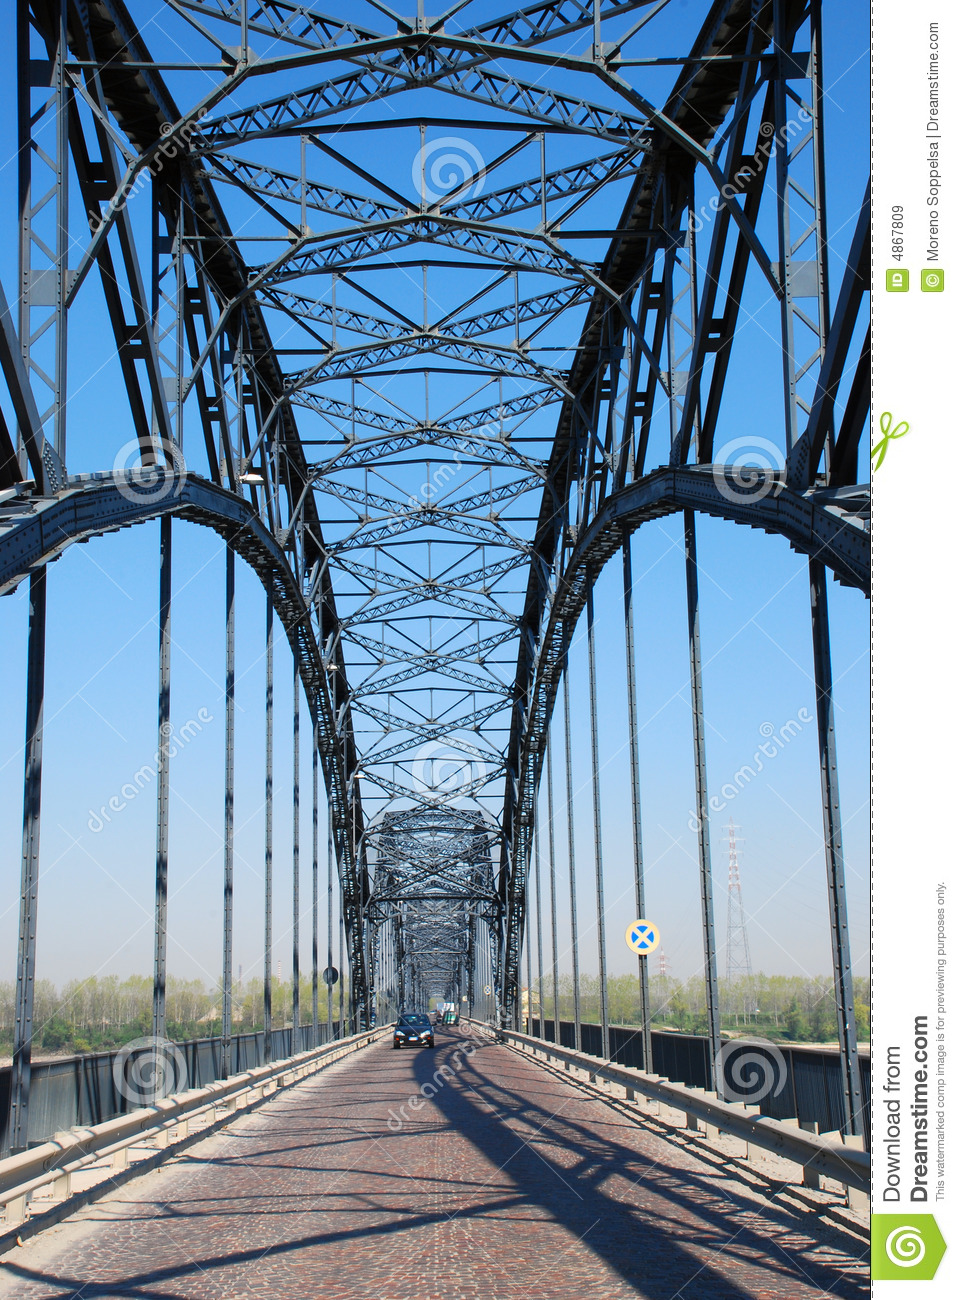 Stock Image Dreamstime Steel Bridge Superstructure Royalty Free Stock Images